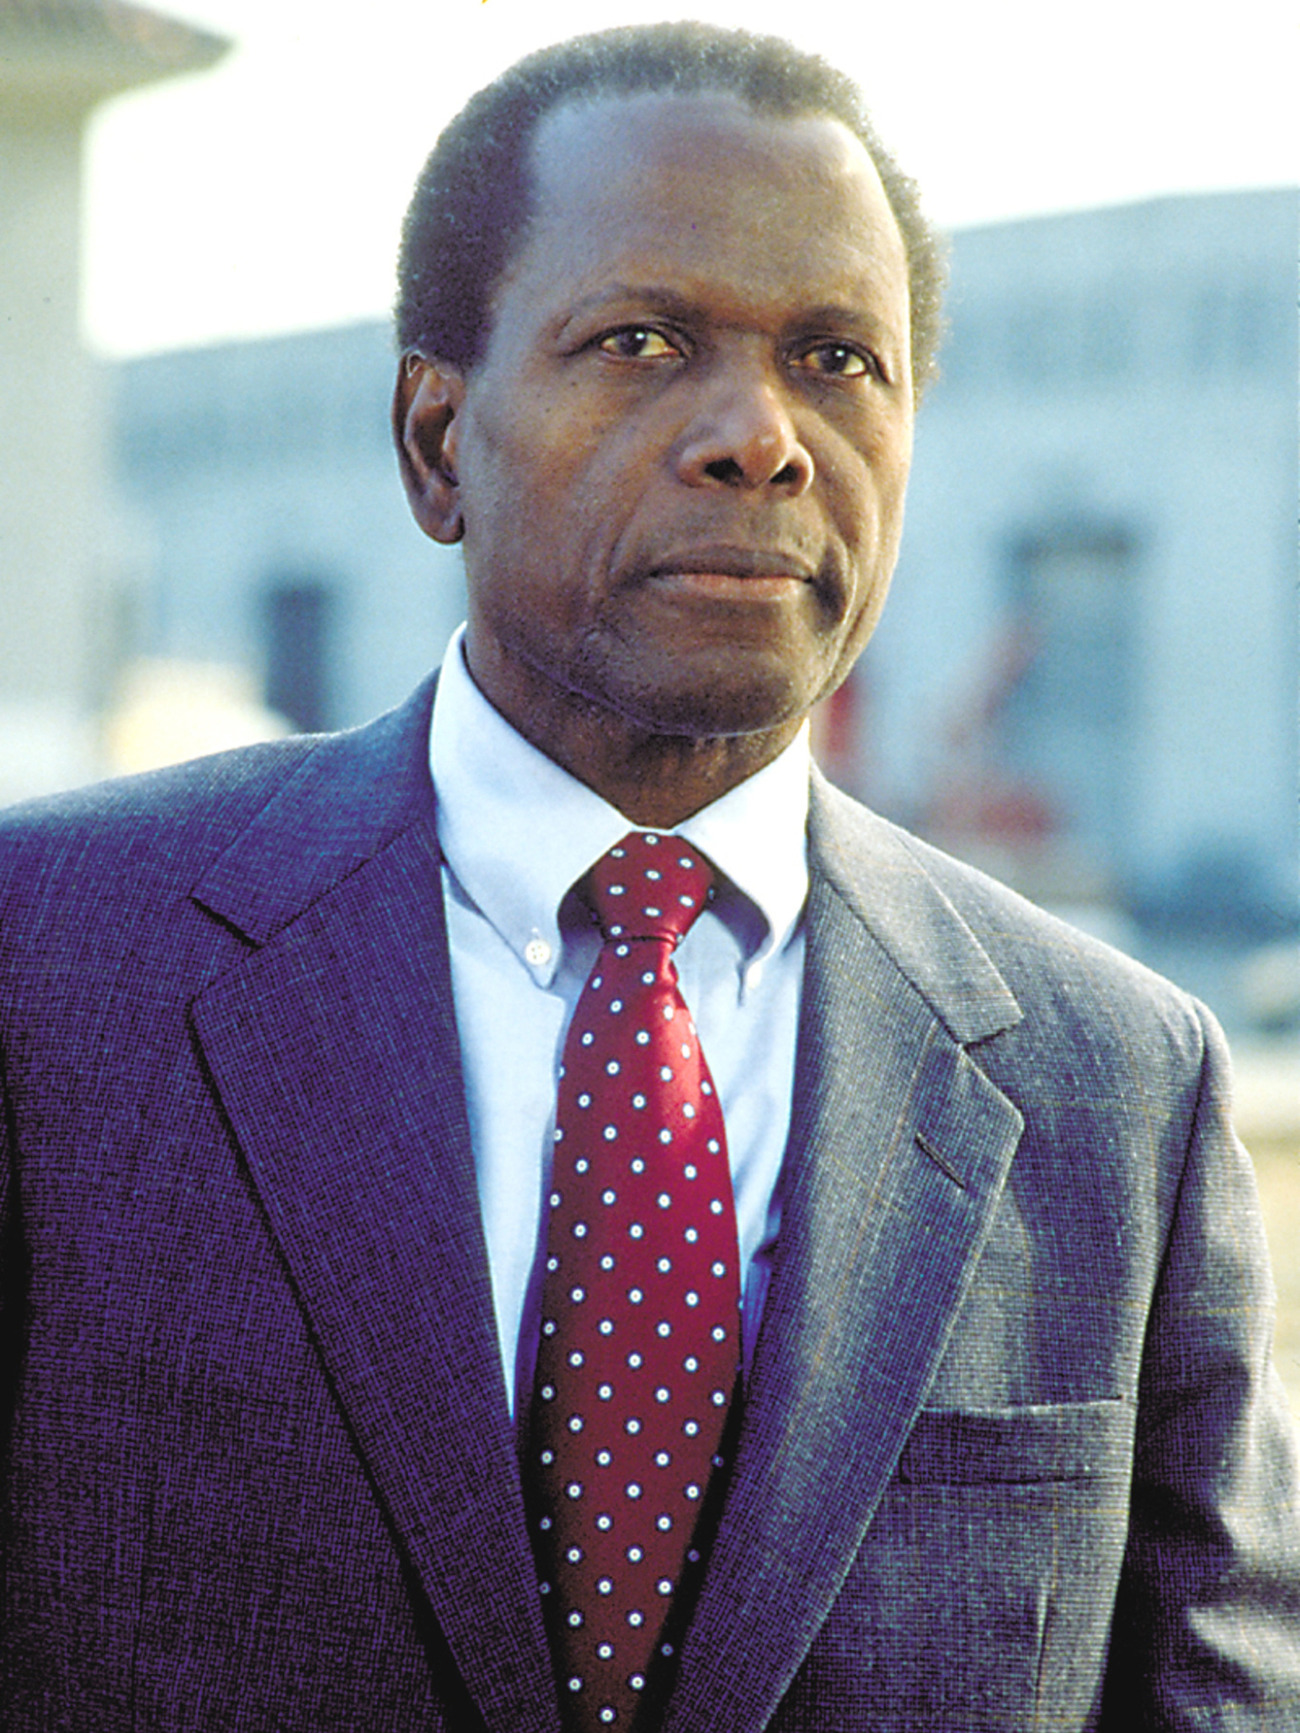 Ktchenor image Sidney Poitier HD wallpapers and backgrounds photos